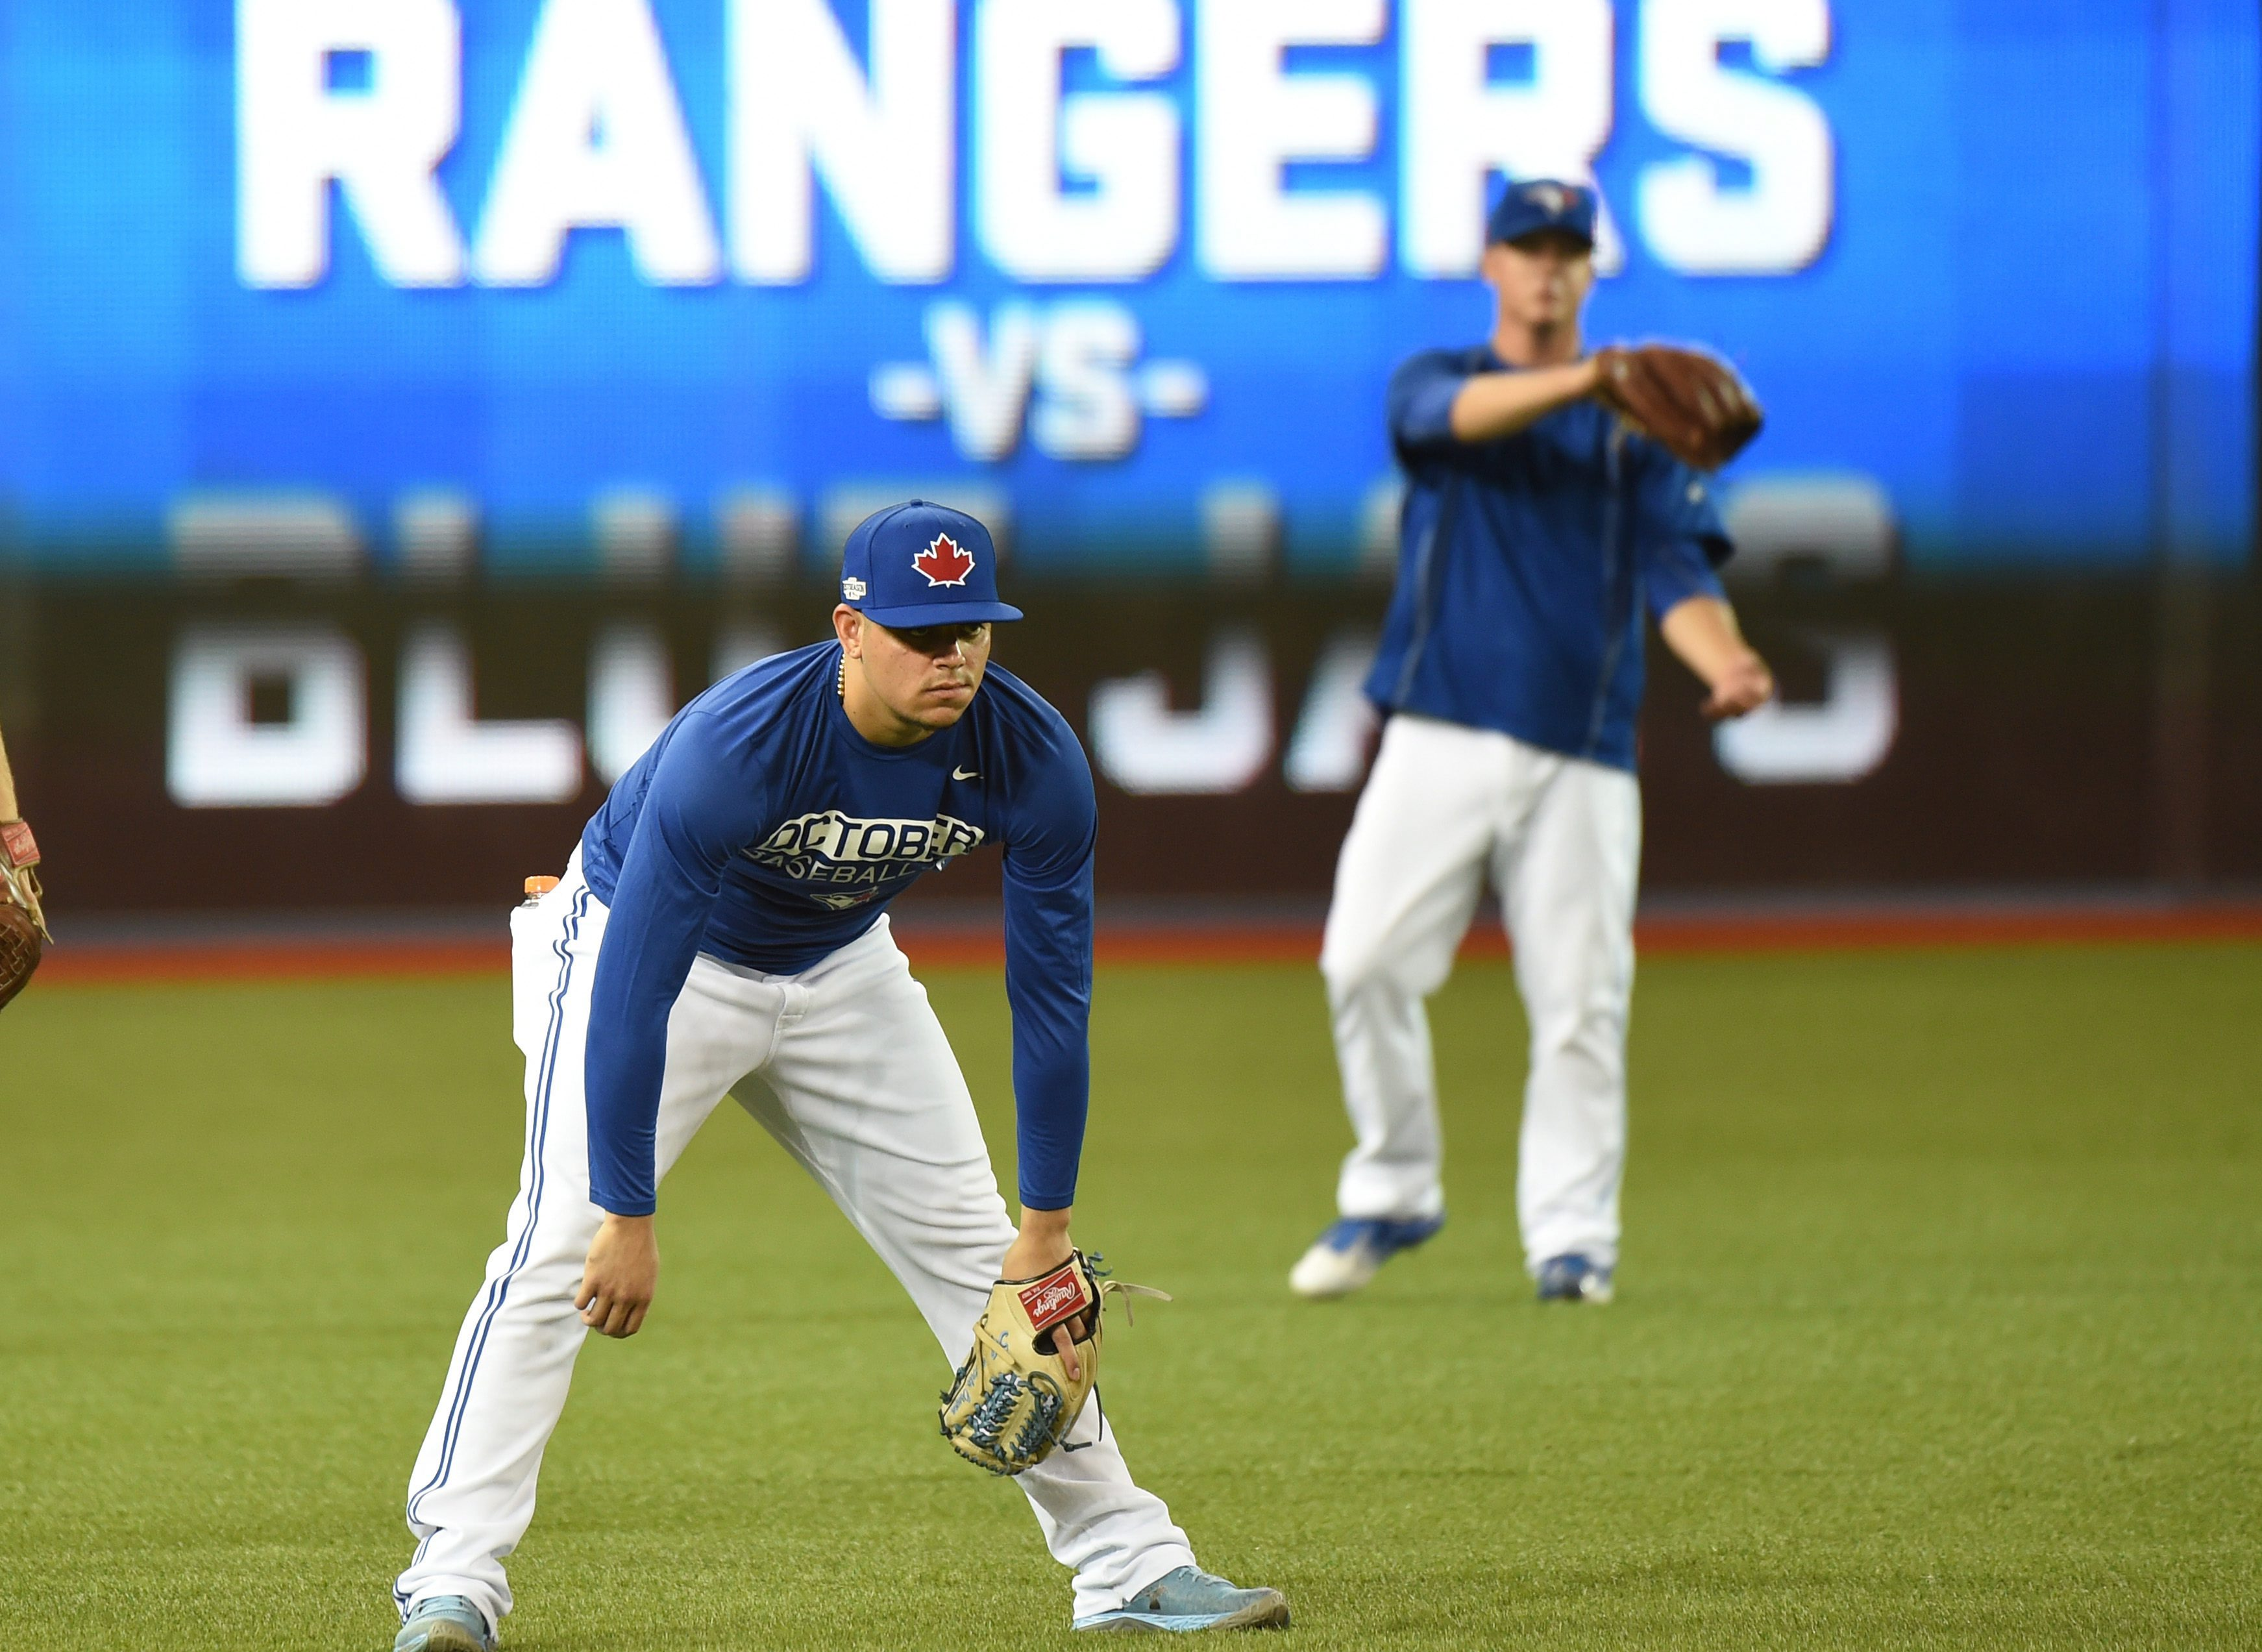 Toronto Blue Jays relief pitcher Roberto Osuna, left, warms up during a baseball workout ahead of Game 3 in the American League Division Series  in Toronto on Saturday, Oct. 8, 2016. (Jon Blacker/The Canadian Press via AP)